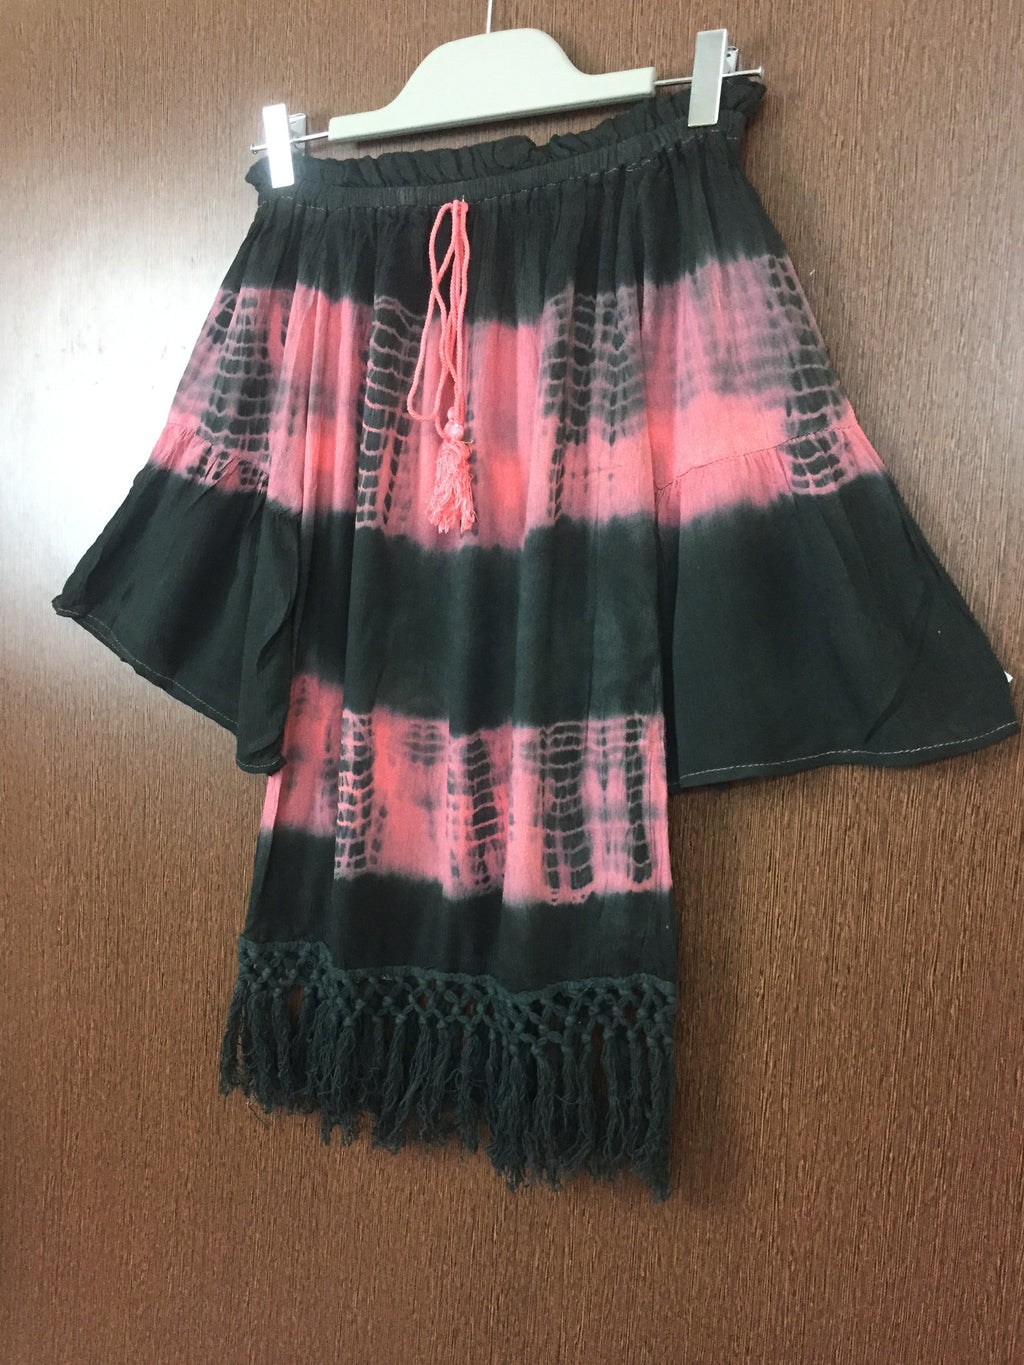 2 Colors - Tasseled - Pink and Black Off shoulder Top